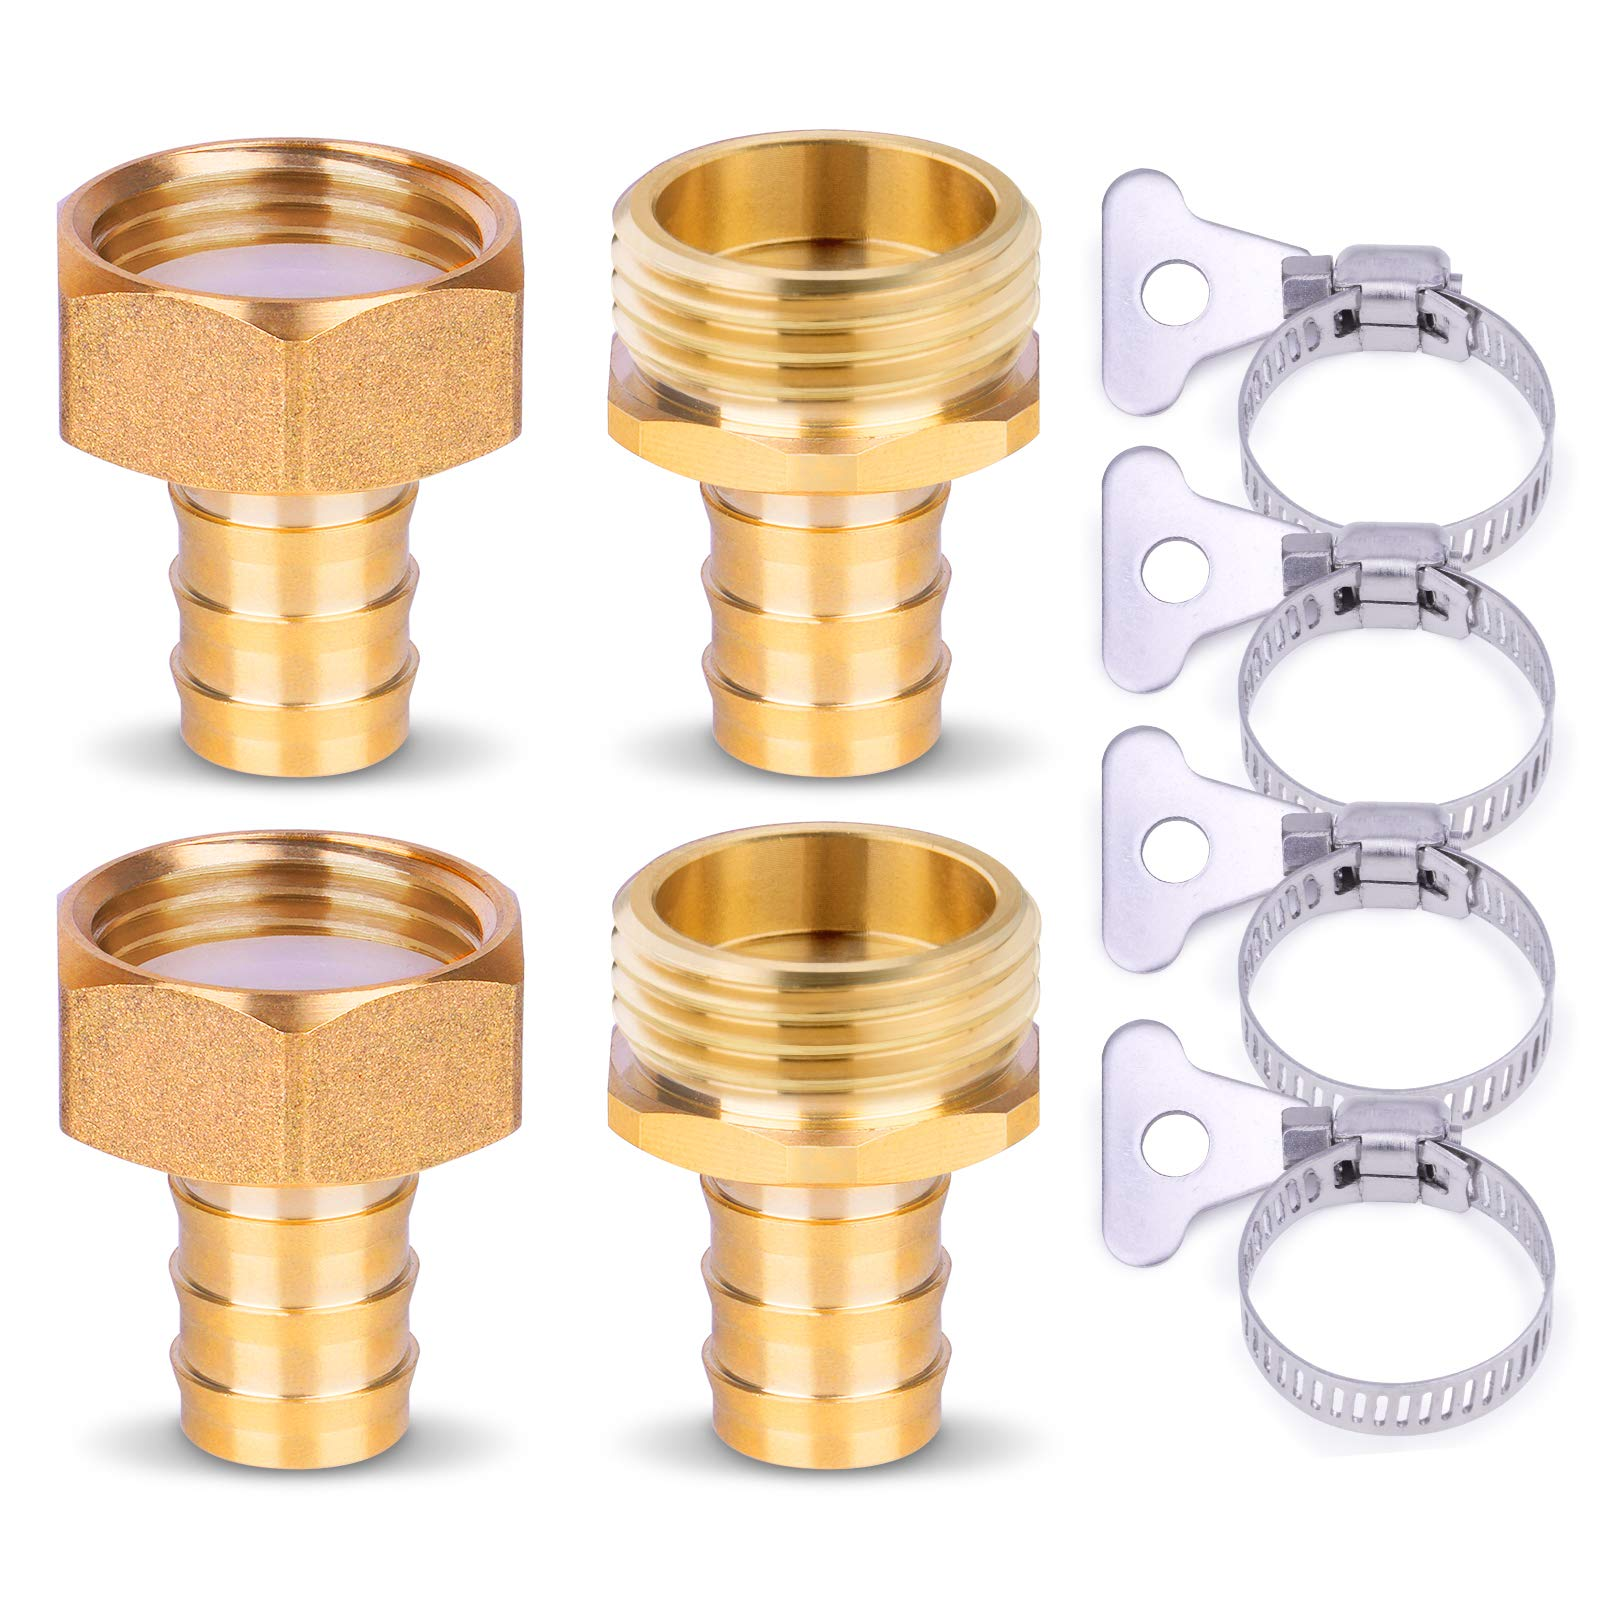 "HOMENOTE Hose Connectors,5/8"" Solid Brass Garden Hose Repair Kit, 2 Sets Swivelable Female and Male Hose Connectors & Fitting with Stainless Steel Clamp and Teflon Tape"